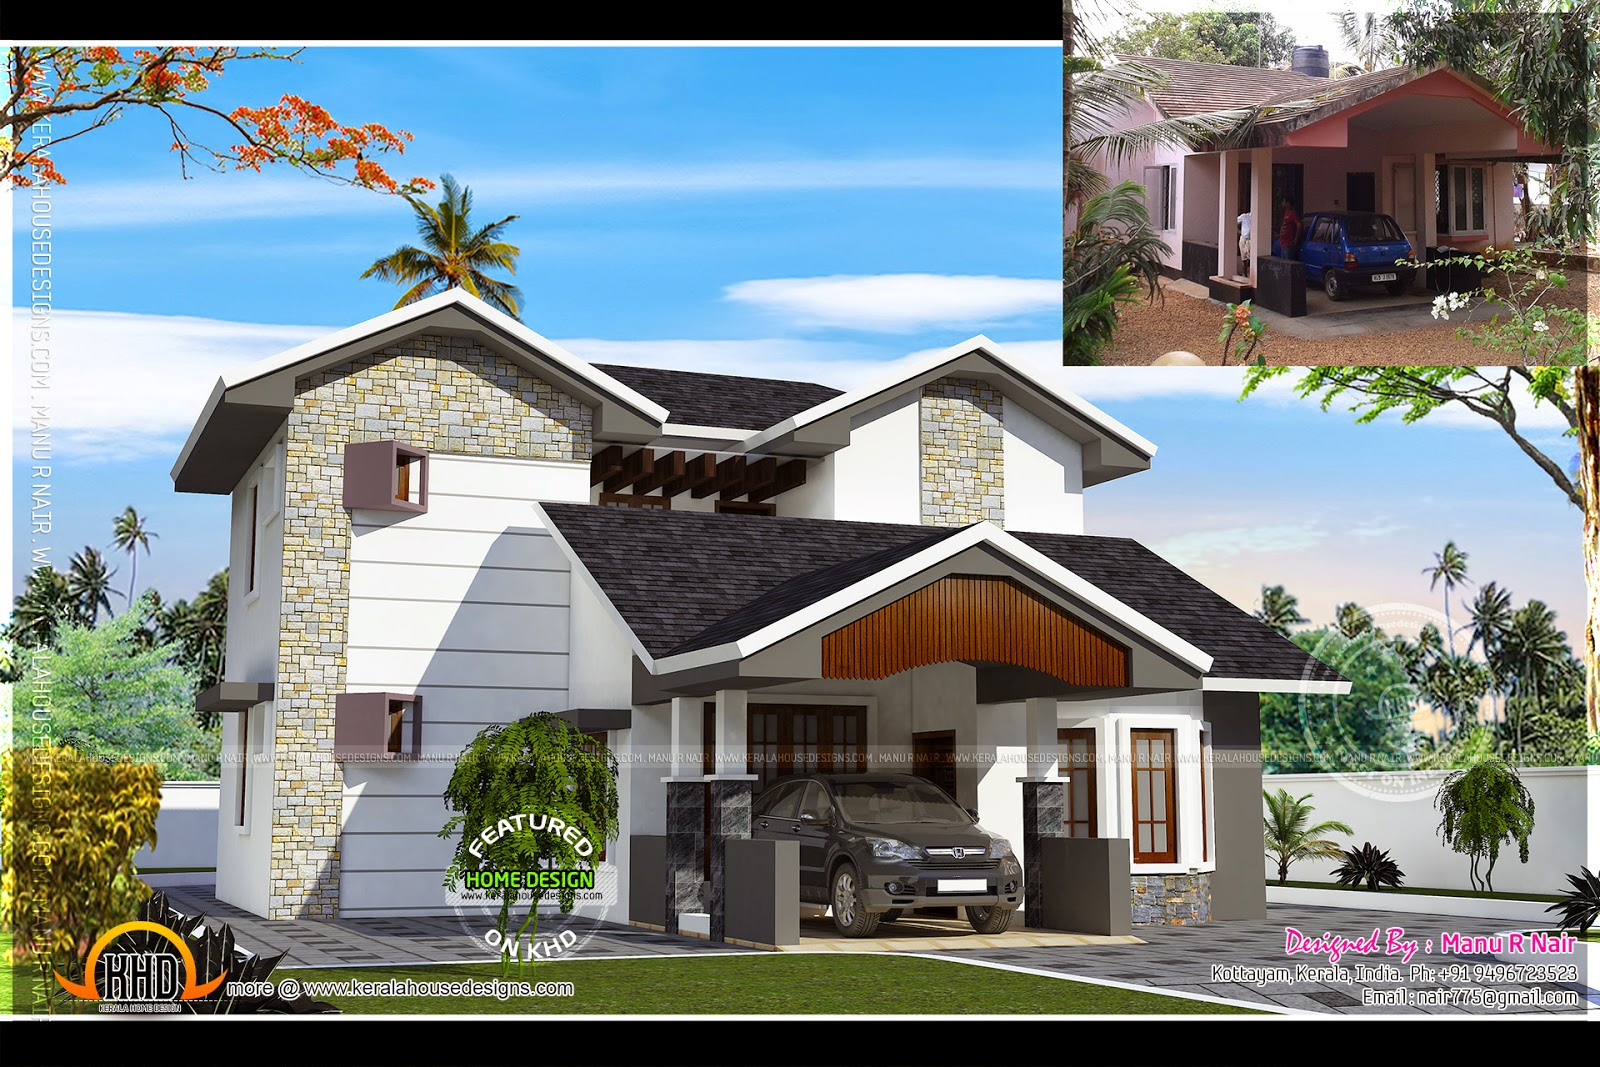 Old house renovation ideas kerala Old home renovation in kerala